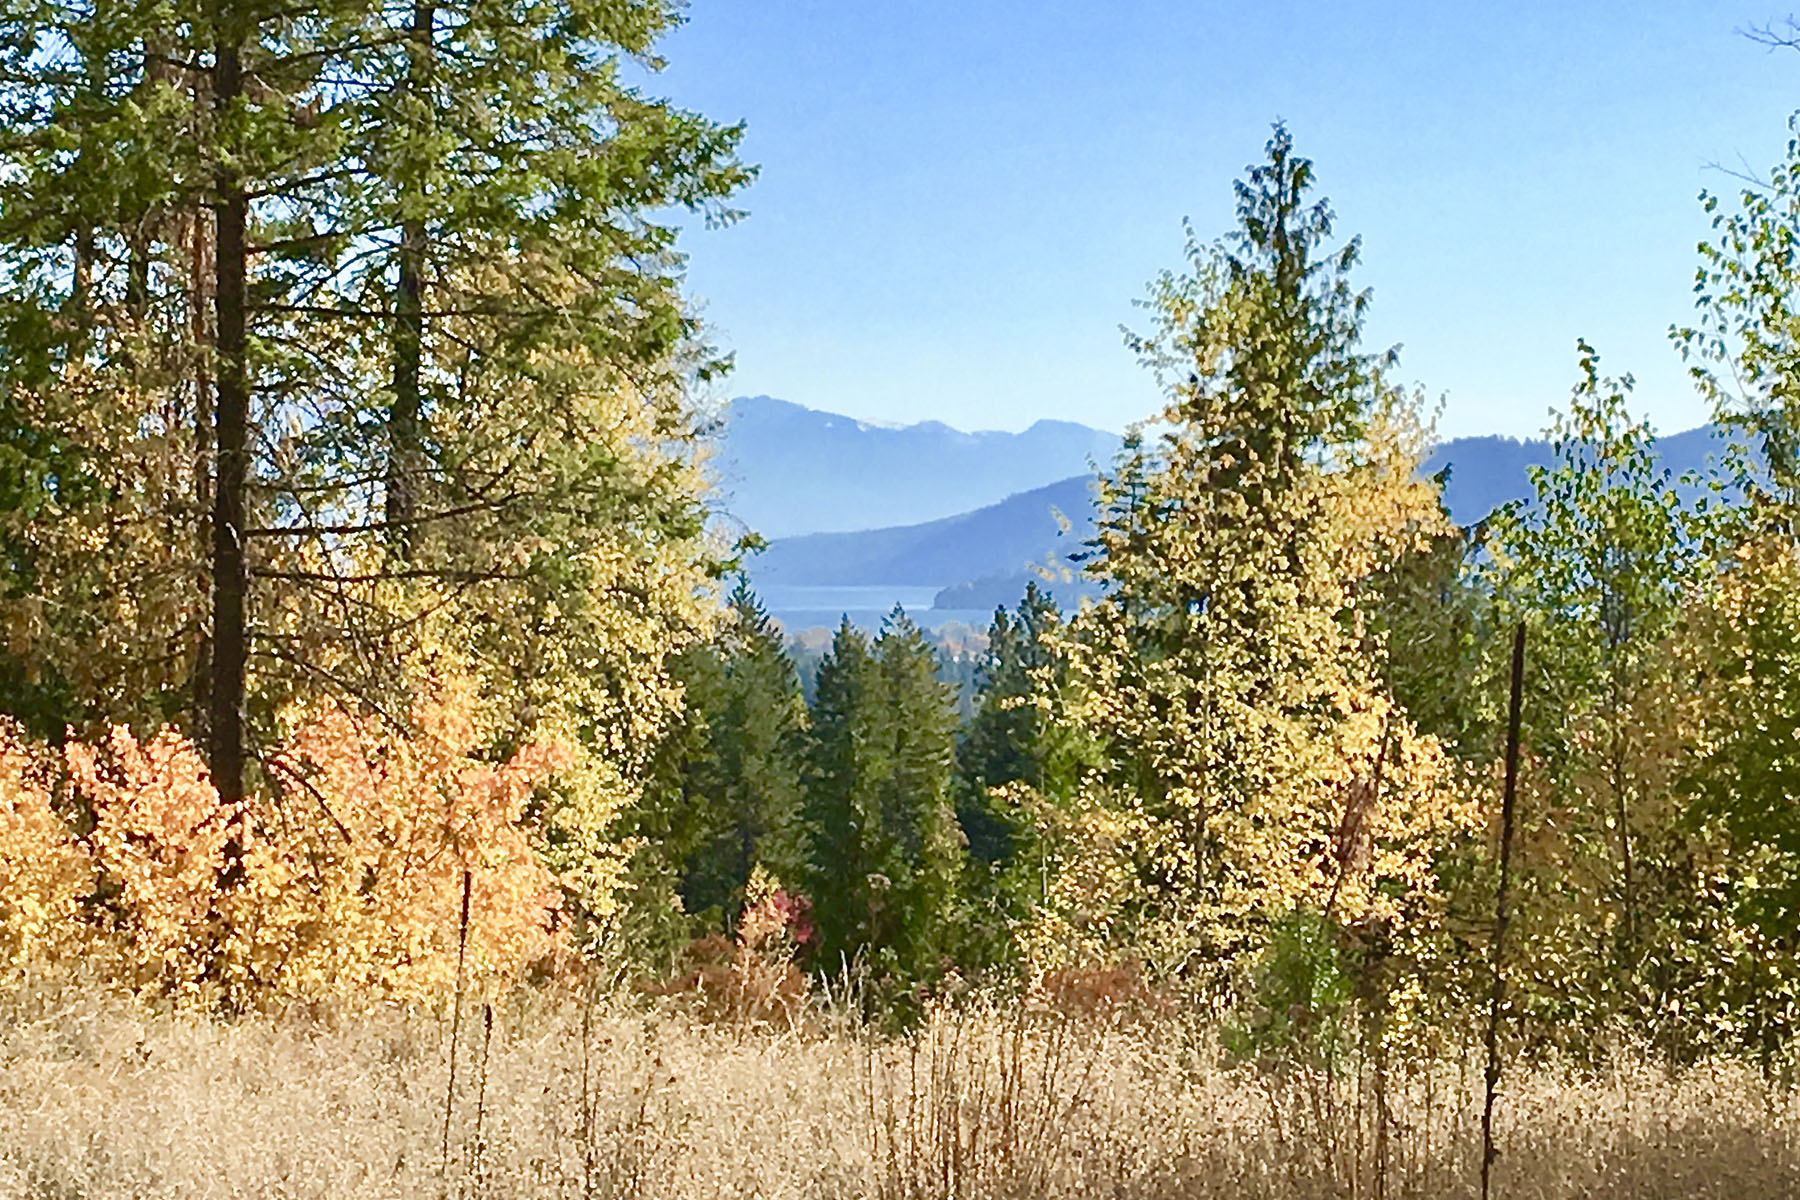 Build Your Dream on Over an Acre With Views 44 Mariposa Ct Sandpoint, Idaho 83864 United States